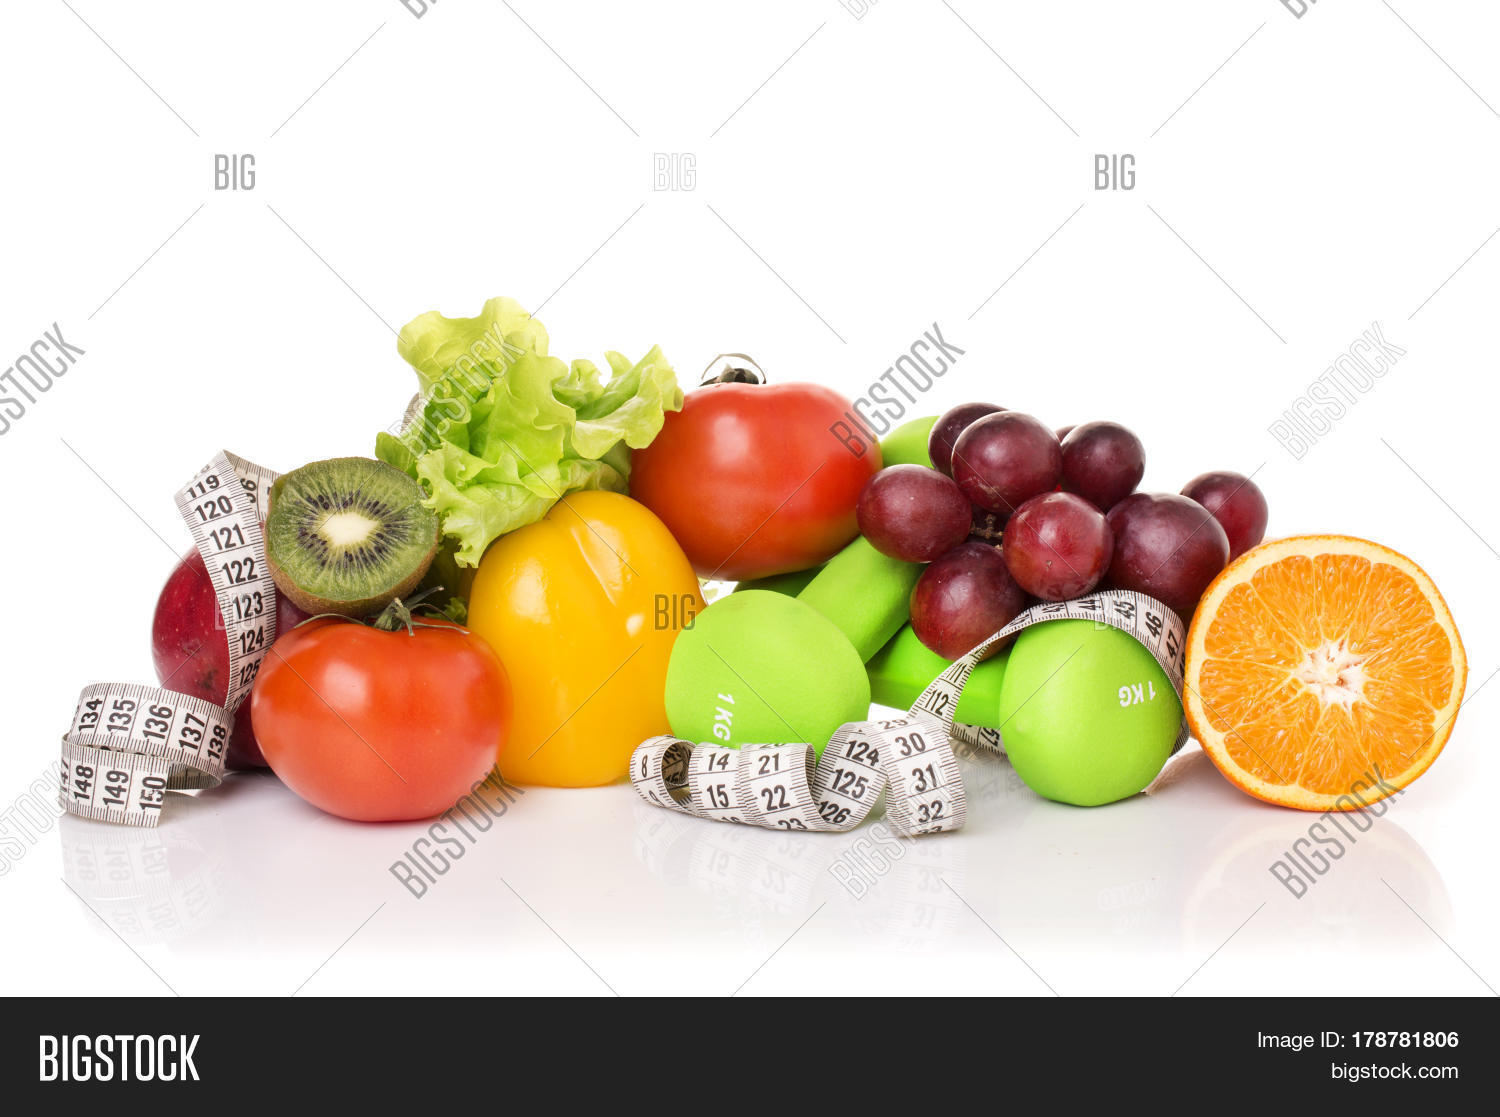 Fitness equipment and healthy food isolated on white